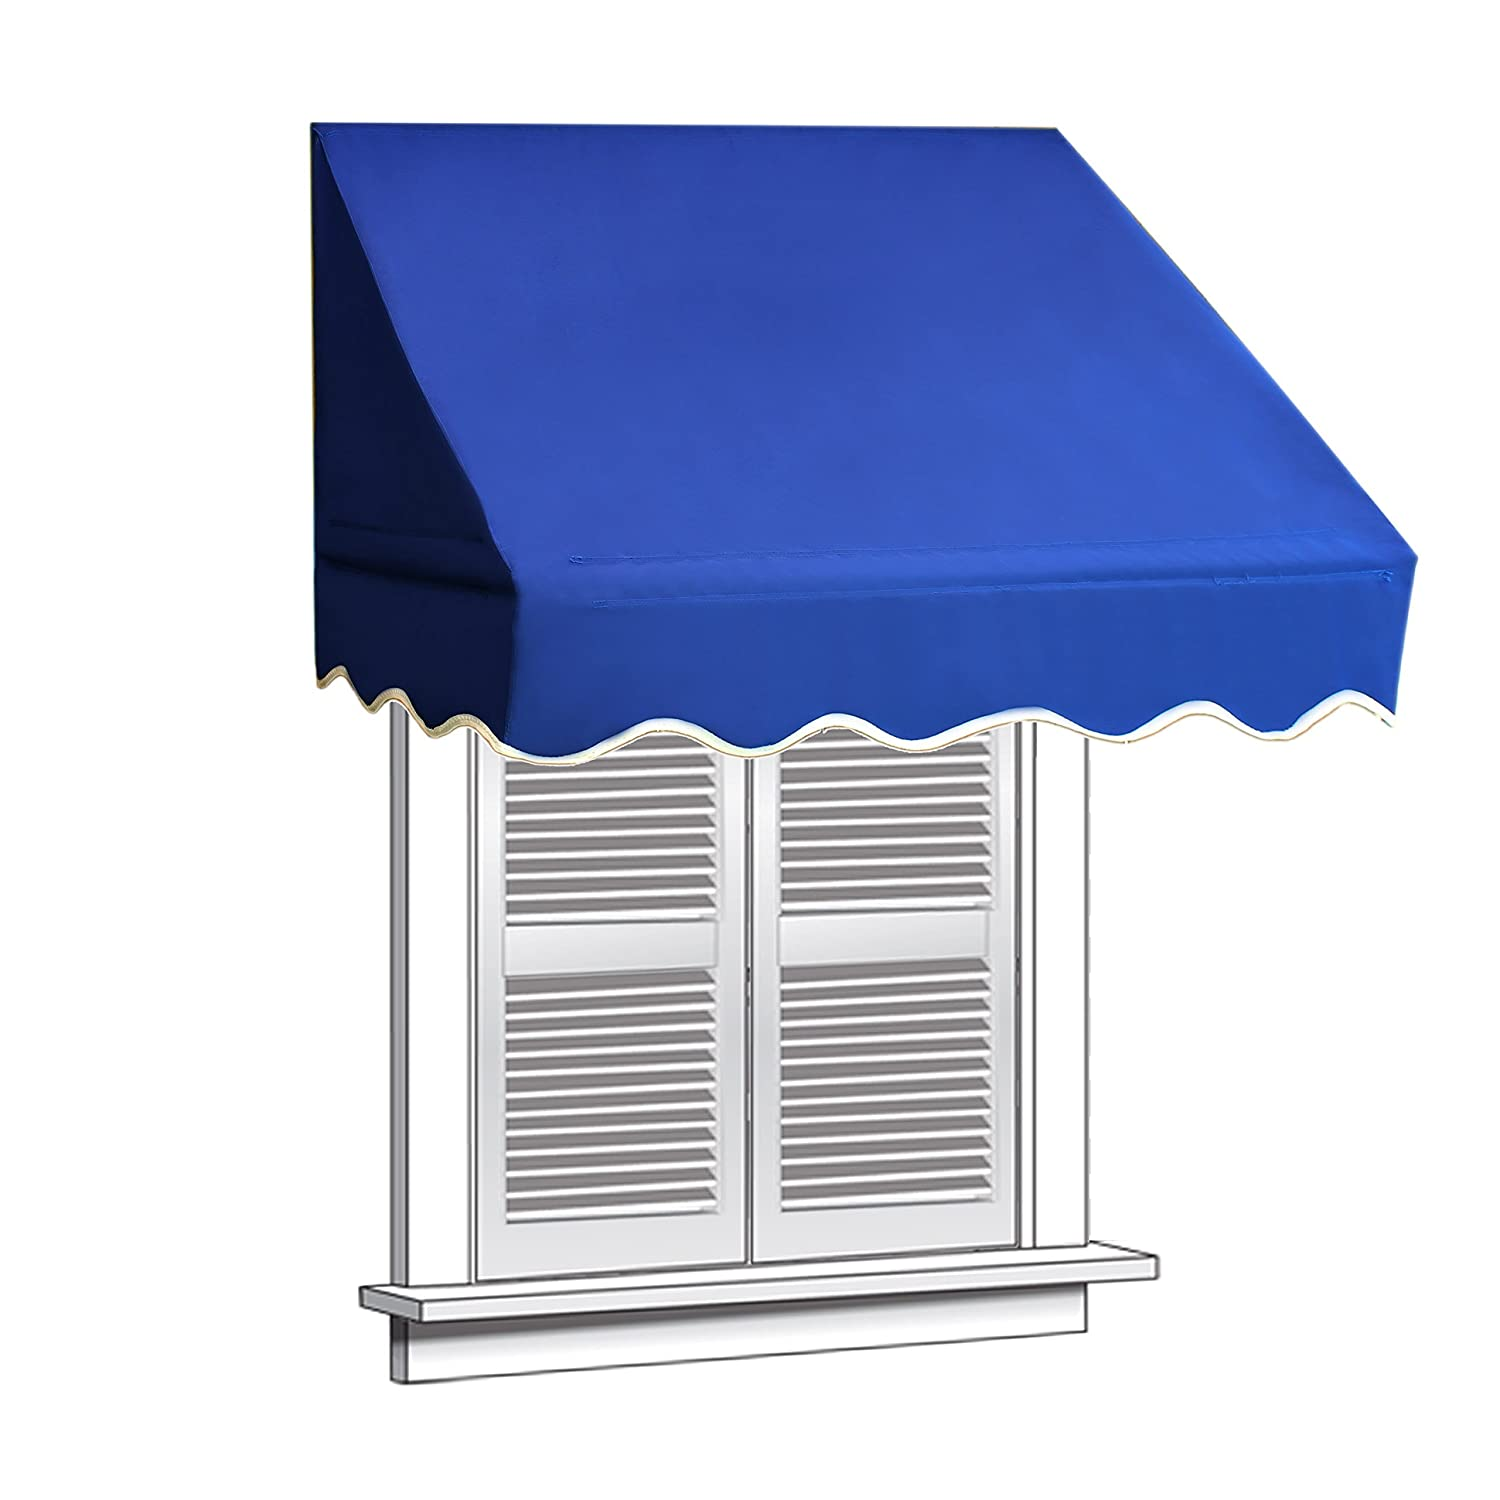 ALEKO 4x2 Blue Window Awning Door Canopy 4-Foot Decorator Awning - - Amazon.com  sc 1 st  Amazon.com : windows canopy - memphite.com